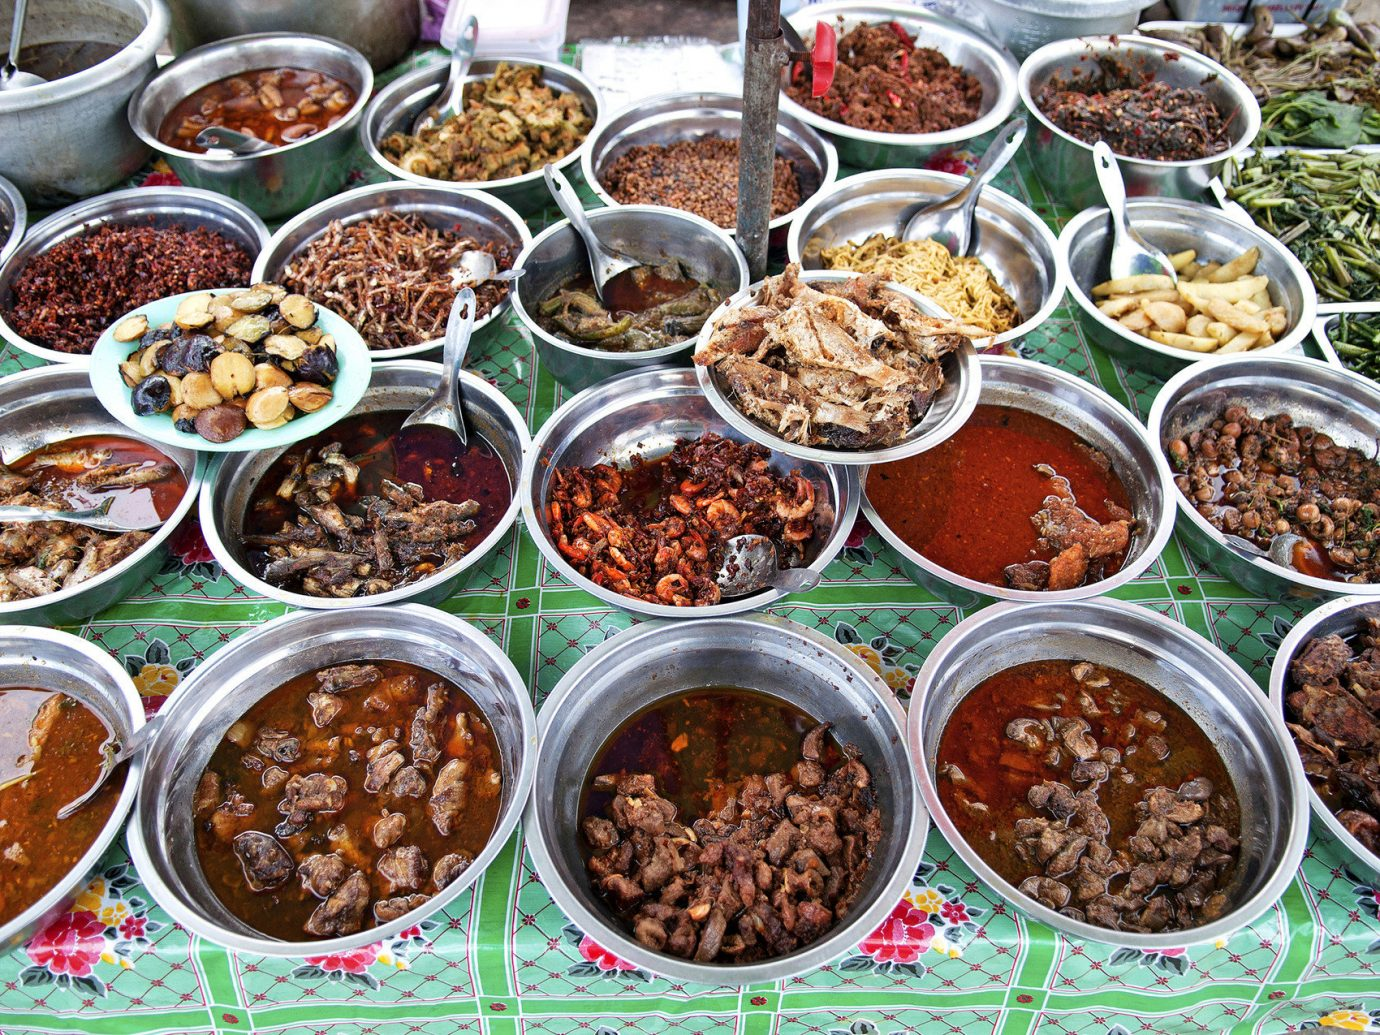 Travel Tips plate table food many different dish outdoor bowl Picnic various several meal wooden cuisine asian food set lots produce wood bunch arranged variety